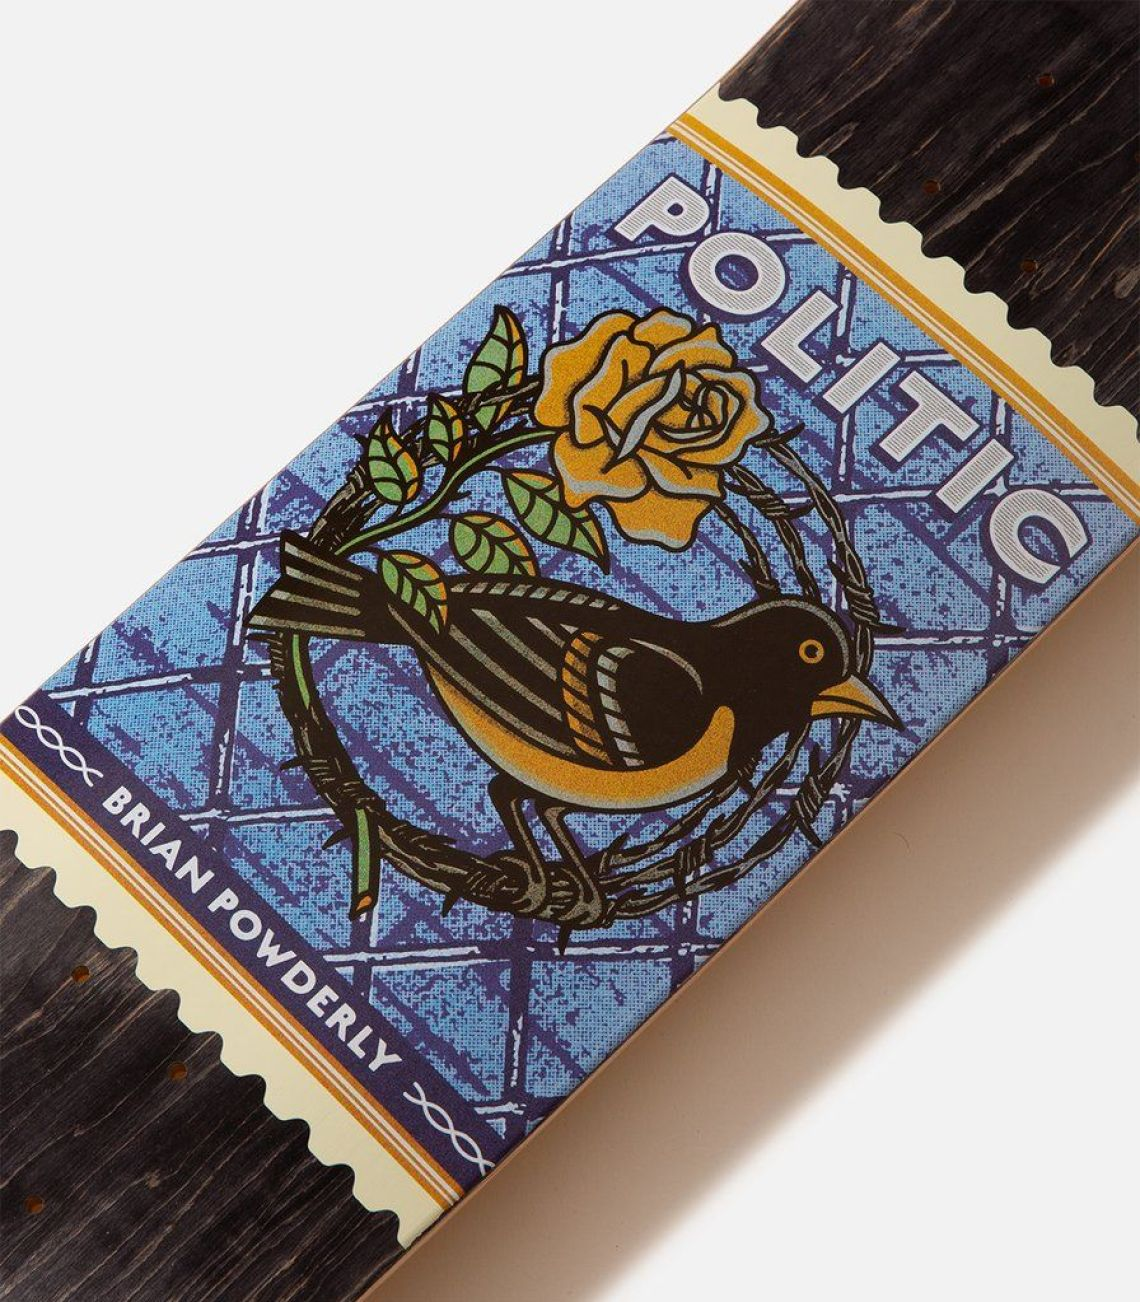 Stamp Series By Politic Skateboards 4